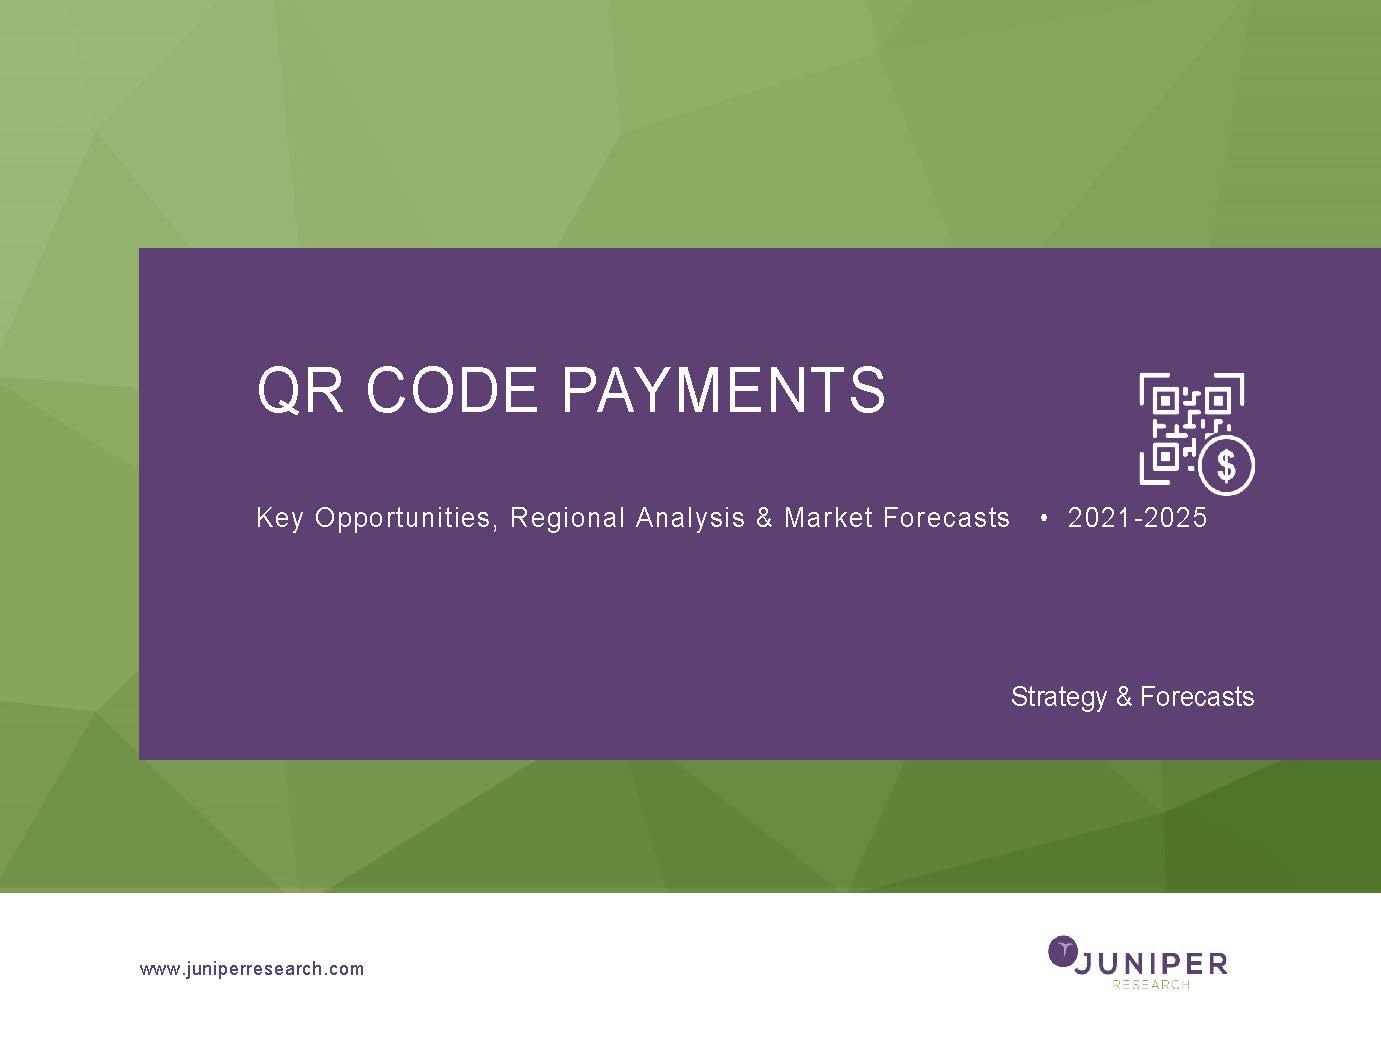 QR Code Payments: Key Opportunities, Regional Analysis & Market Forecasts 2021-2025